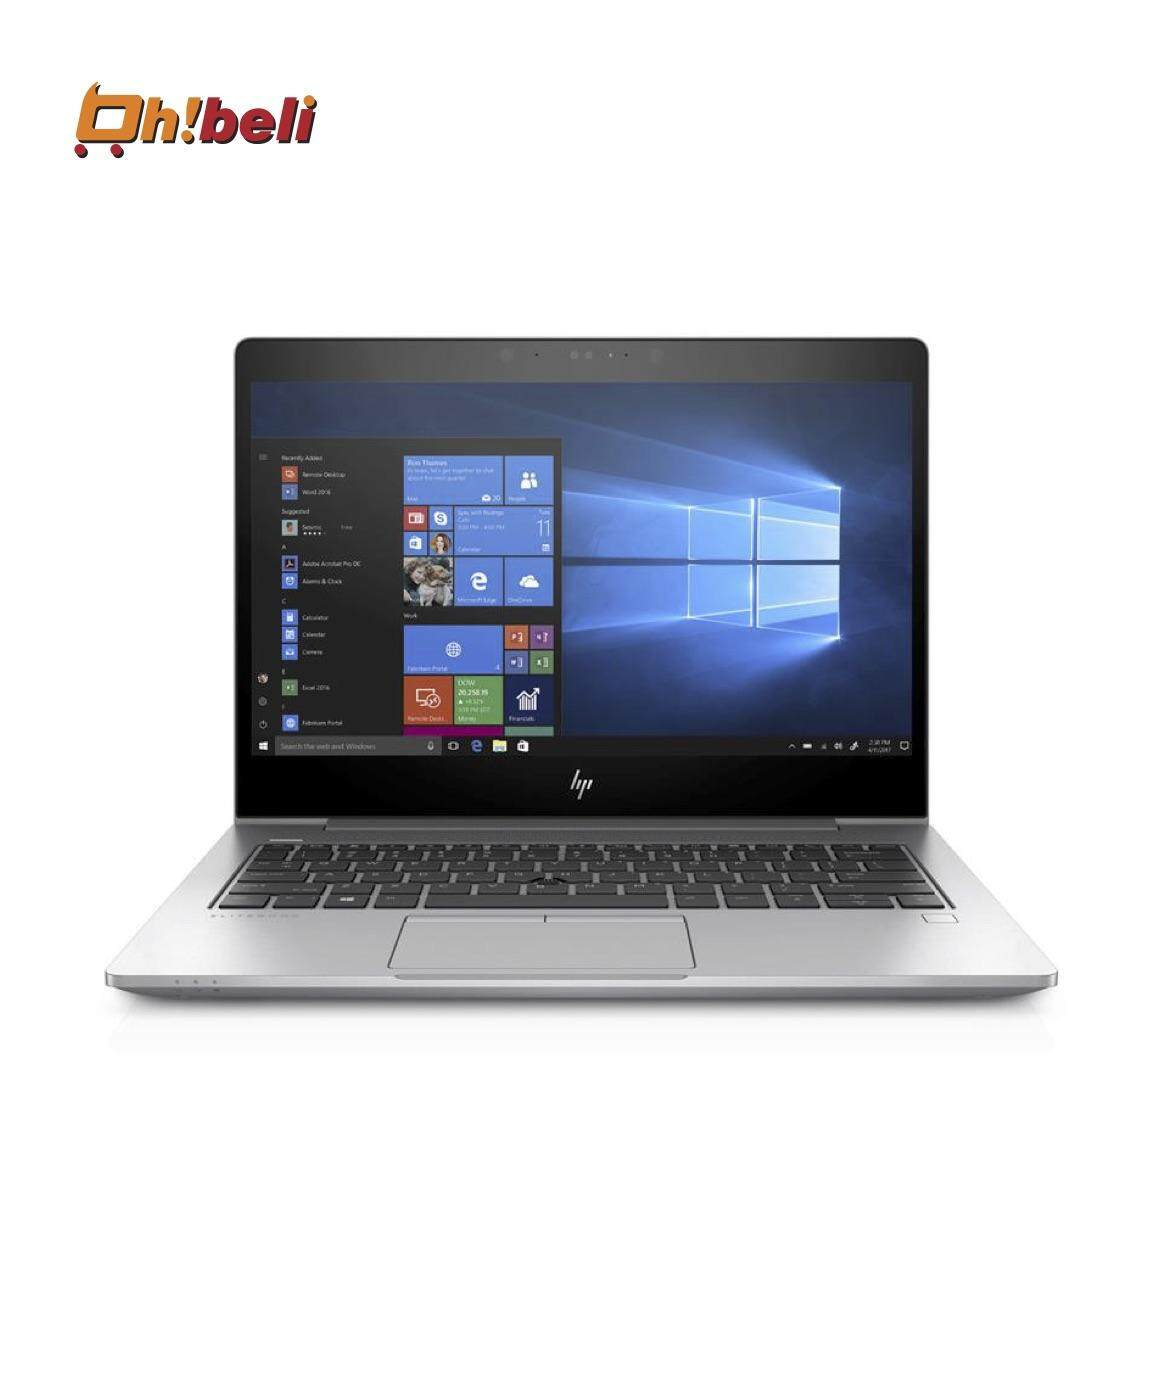 HP ProBook 645 G4 14  Notebook PC (R7PRO-2700U/8GB/500GB) (5WM78PA) (ohbeli) Malaysia